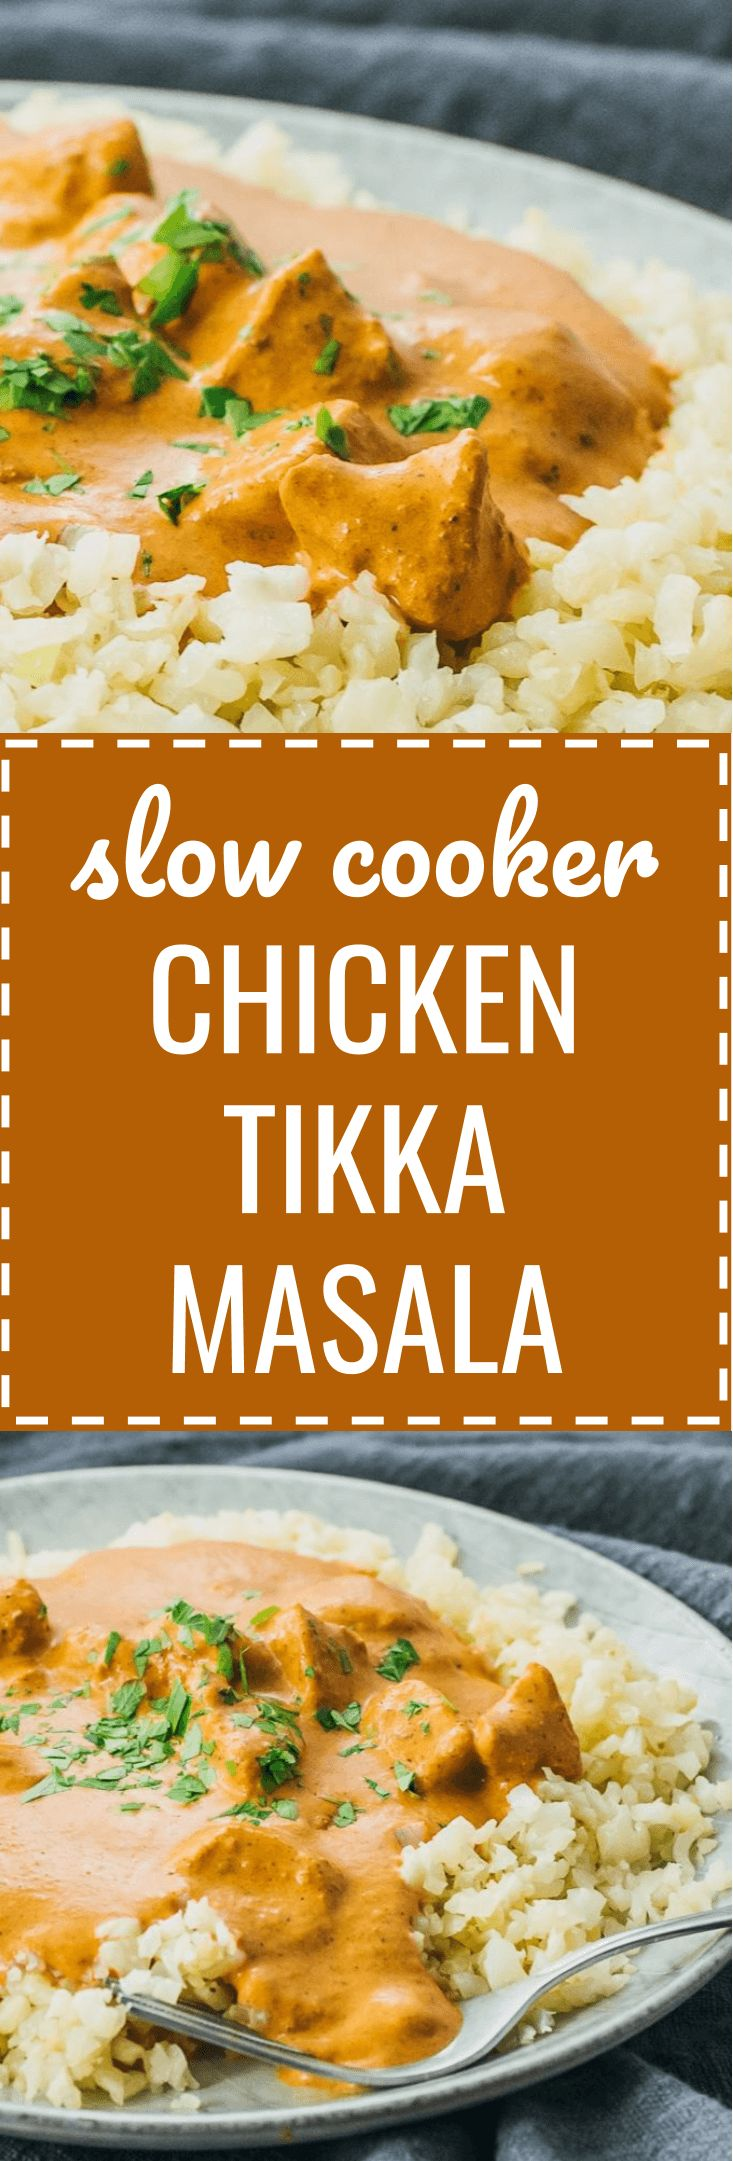 A homemade restaurant-quality version of chicken tikka masala using the slow cooker. crockpot / indian dishes / crock pot / families / weeknight dinners / comfort foods / rice / spices / curries / keto / low carb / diet / atkins / induction / meals / reci http://eatdojo.com/healthy-recipes-salads-haters/